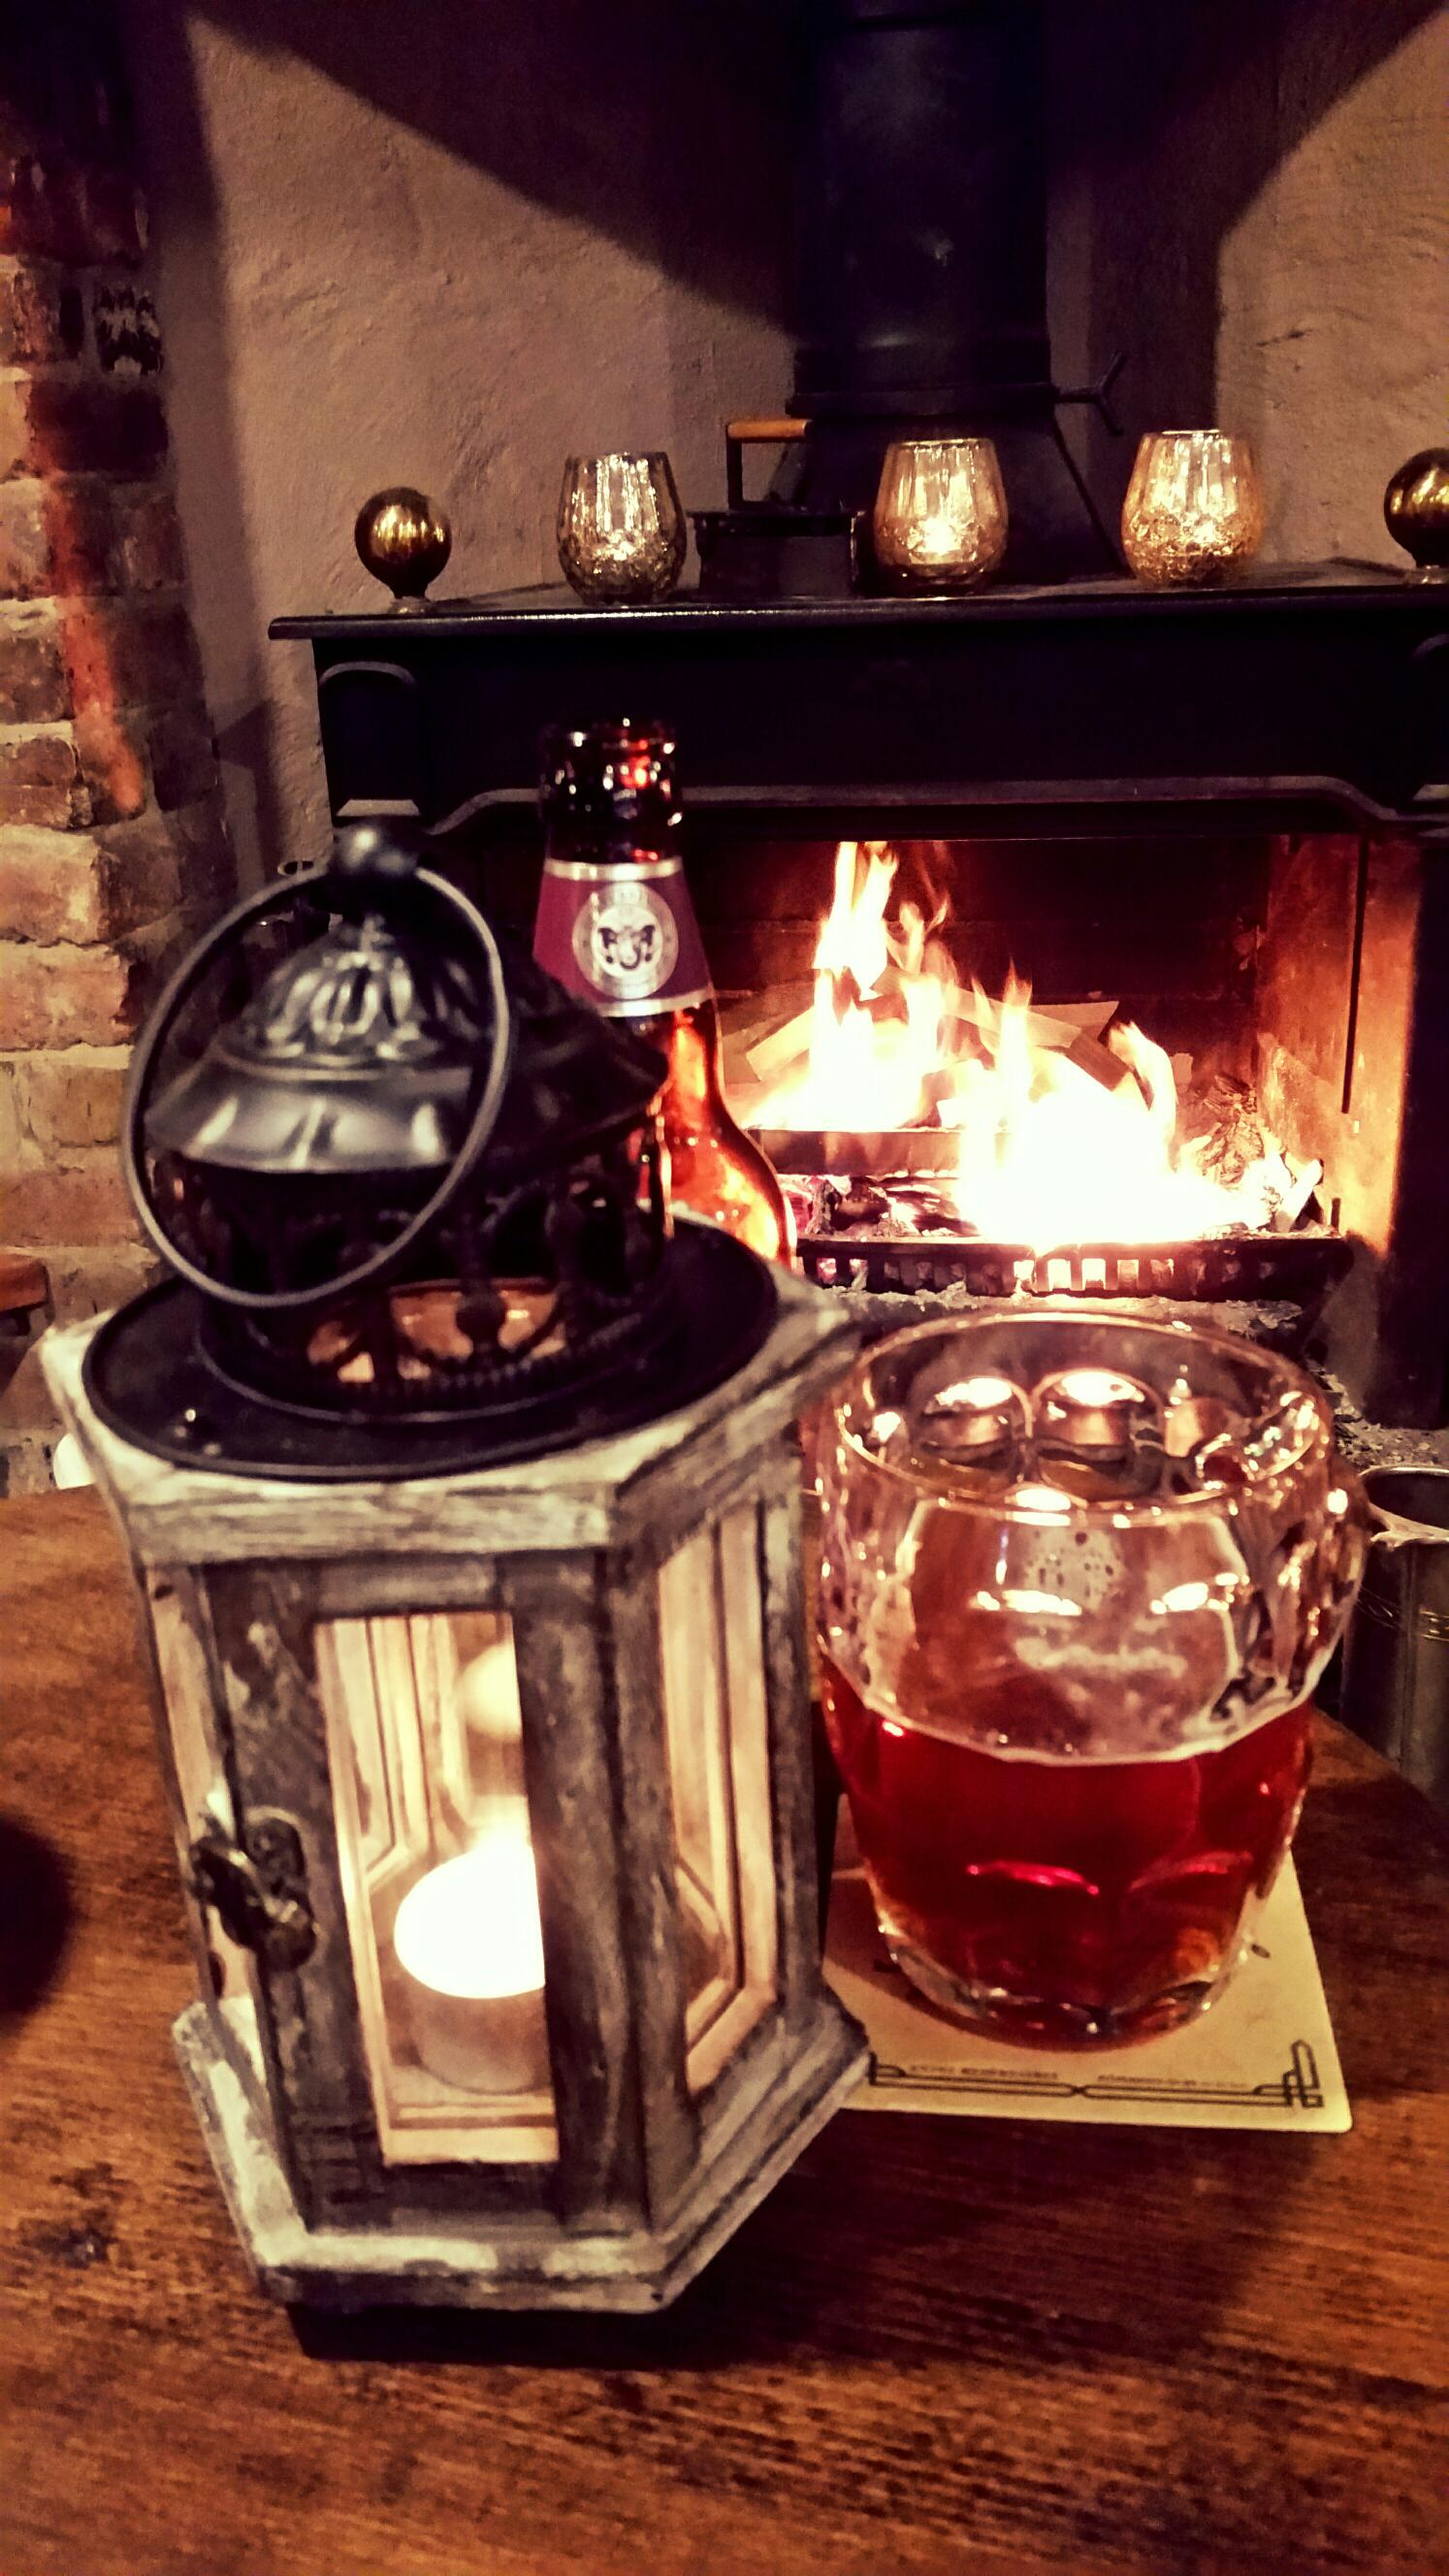 ...or a fireside pint